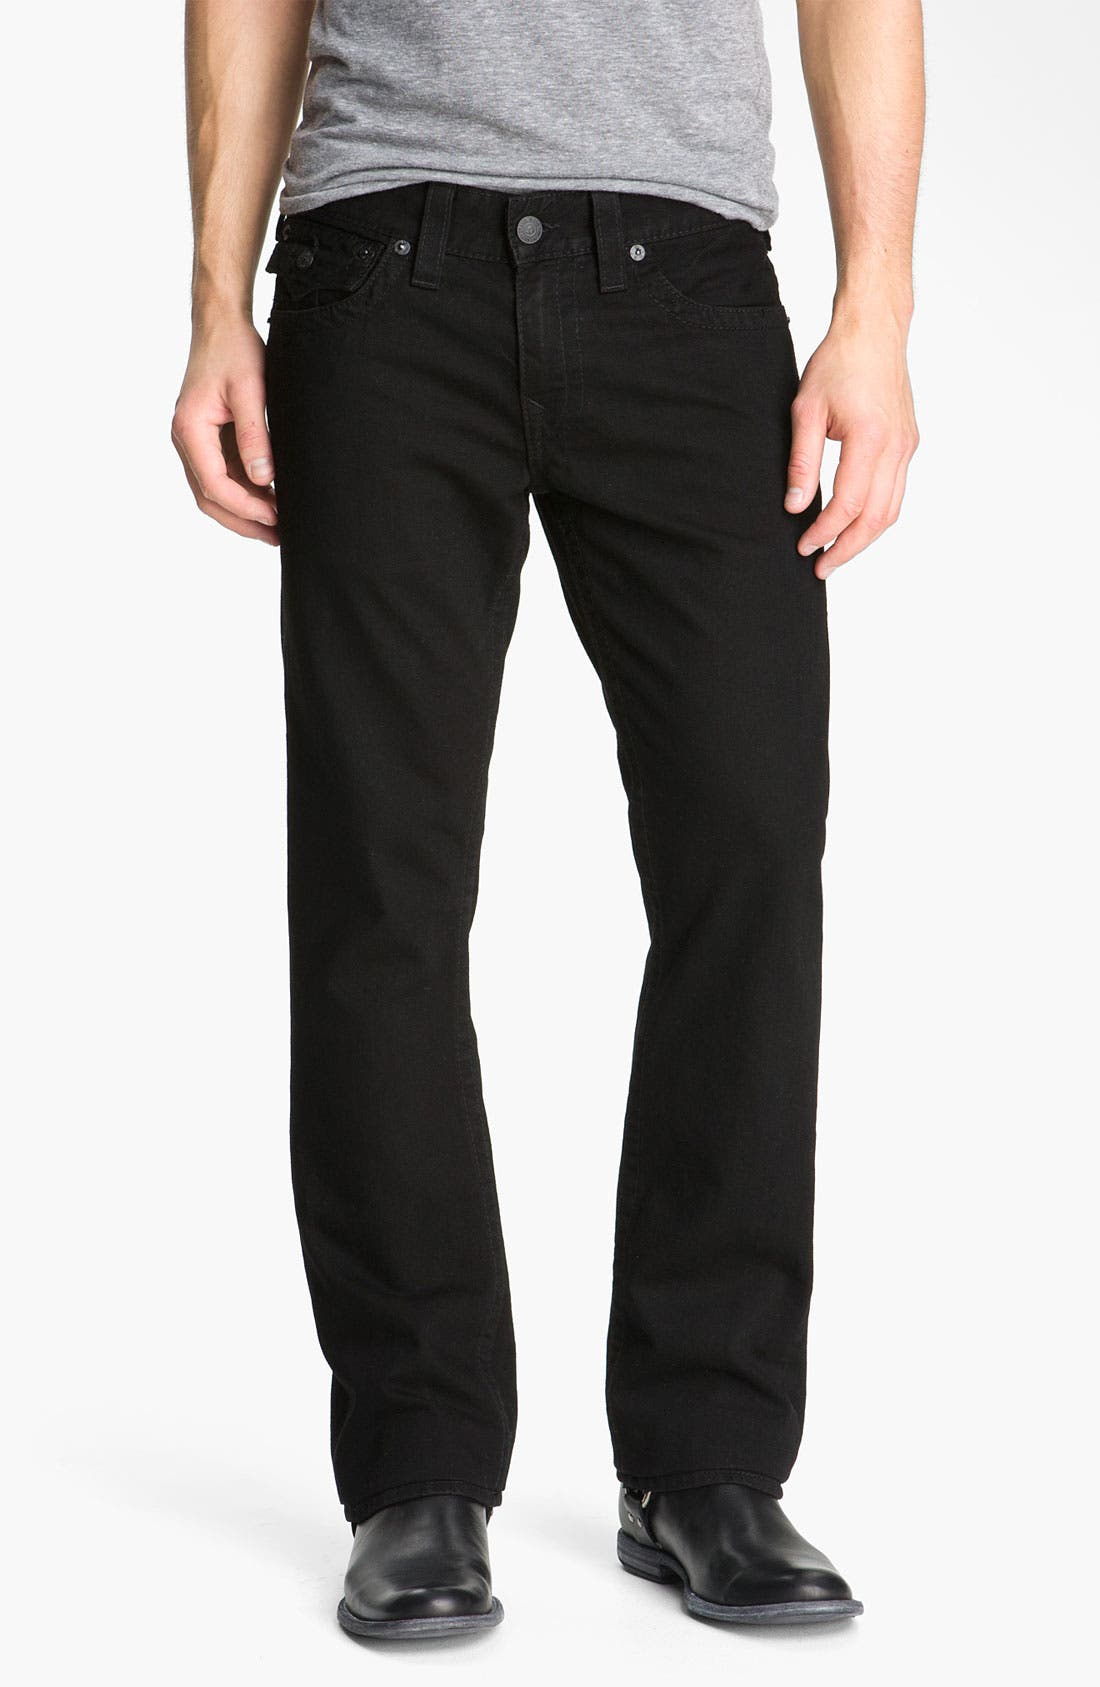 'Ricky' Relaxed Fit Jeans,                             Alternate thumbnail 8, color,